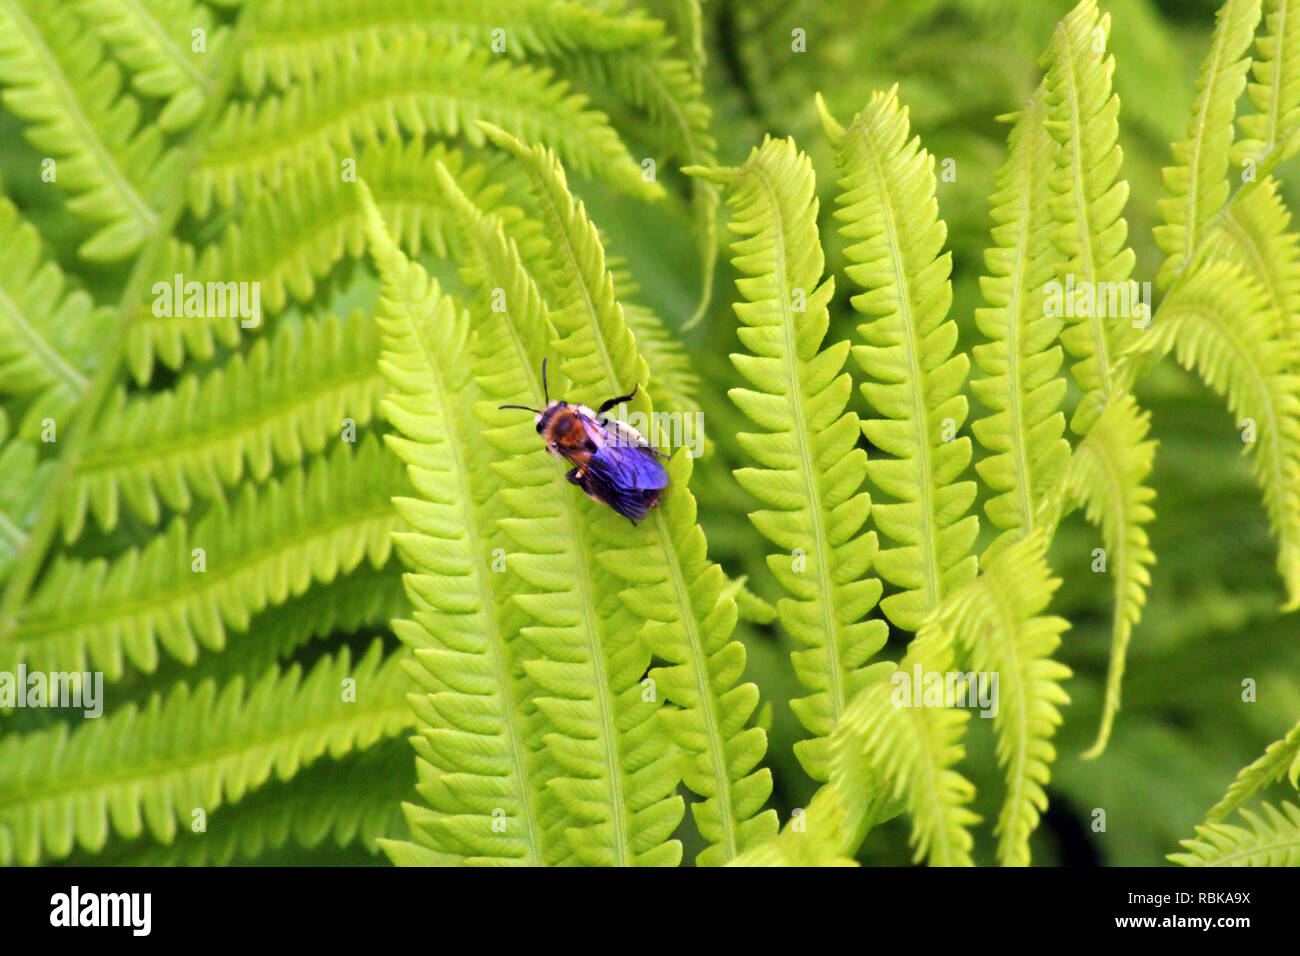 Closeup of a Carpenter bee resting on an Ostrich Fern leaf - Stock Image